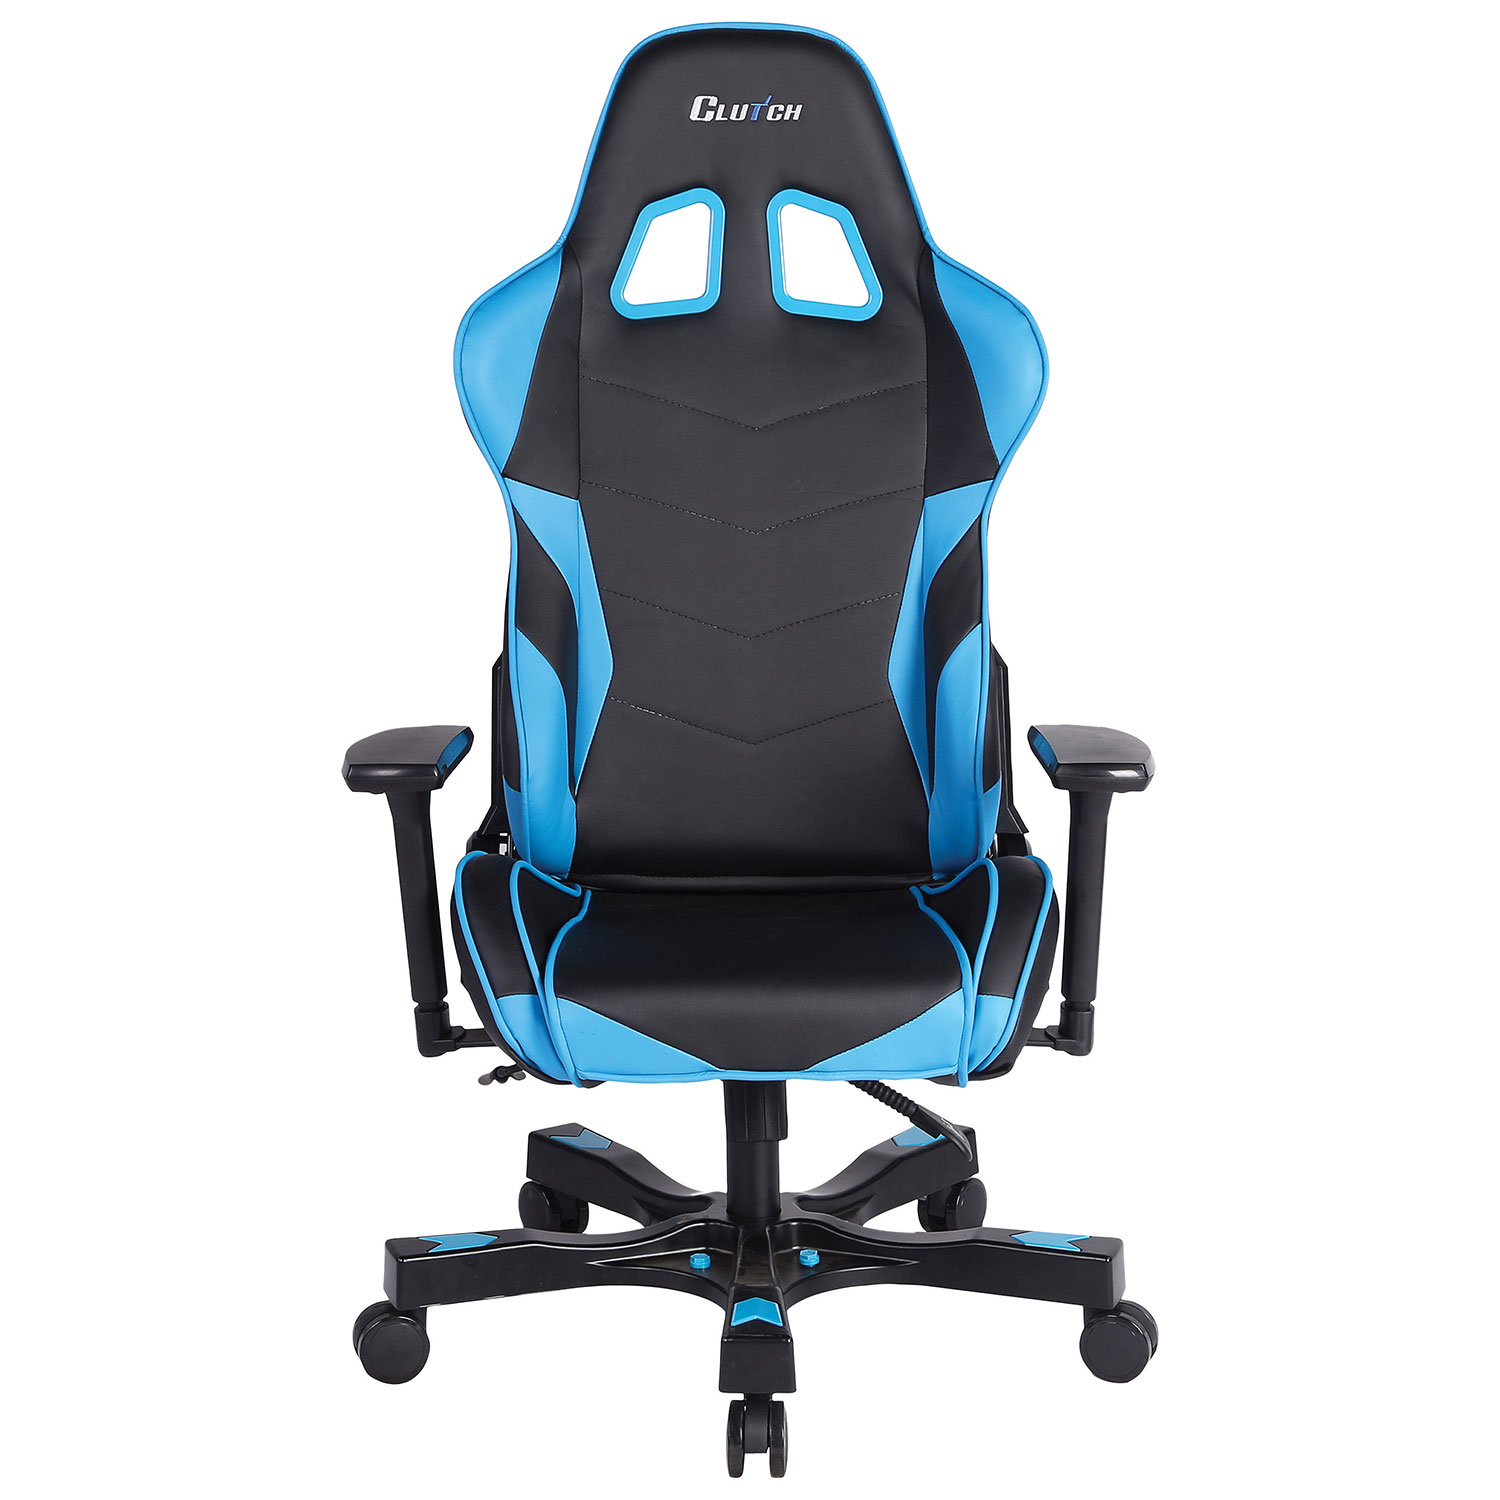 Clutch Chairz Crank Charlie Gaming Chair Blue Black Gaming